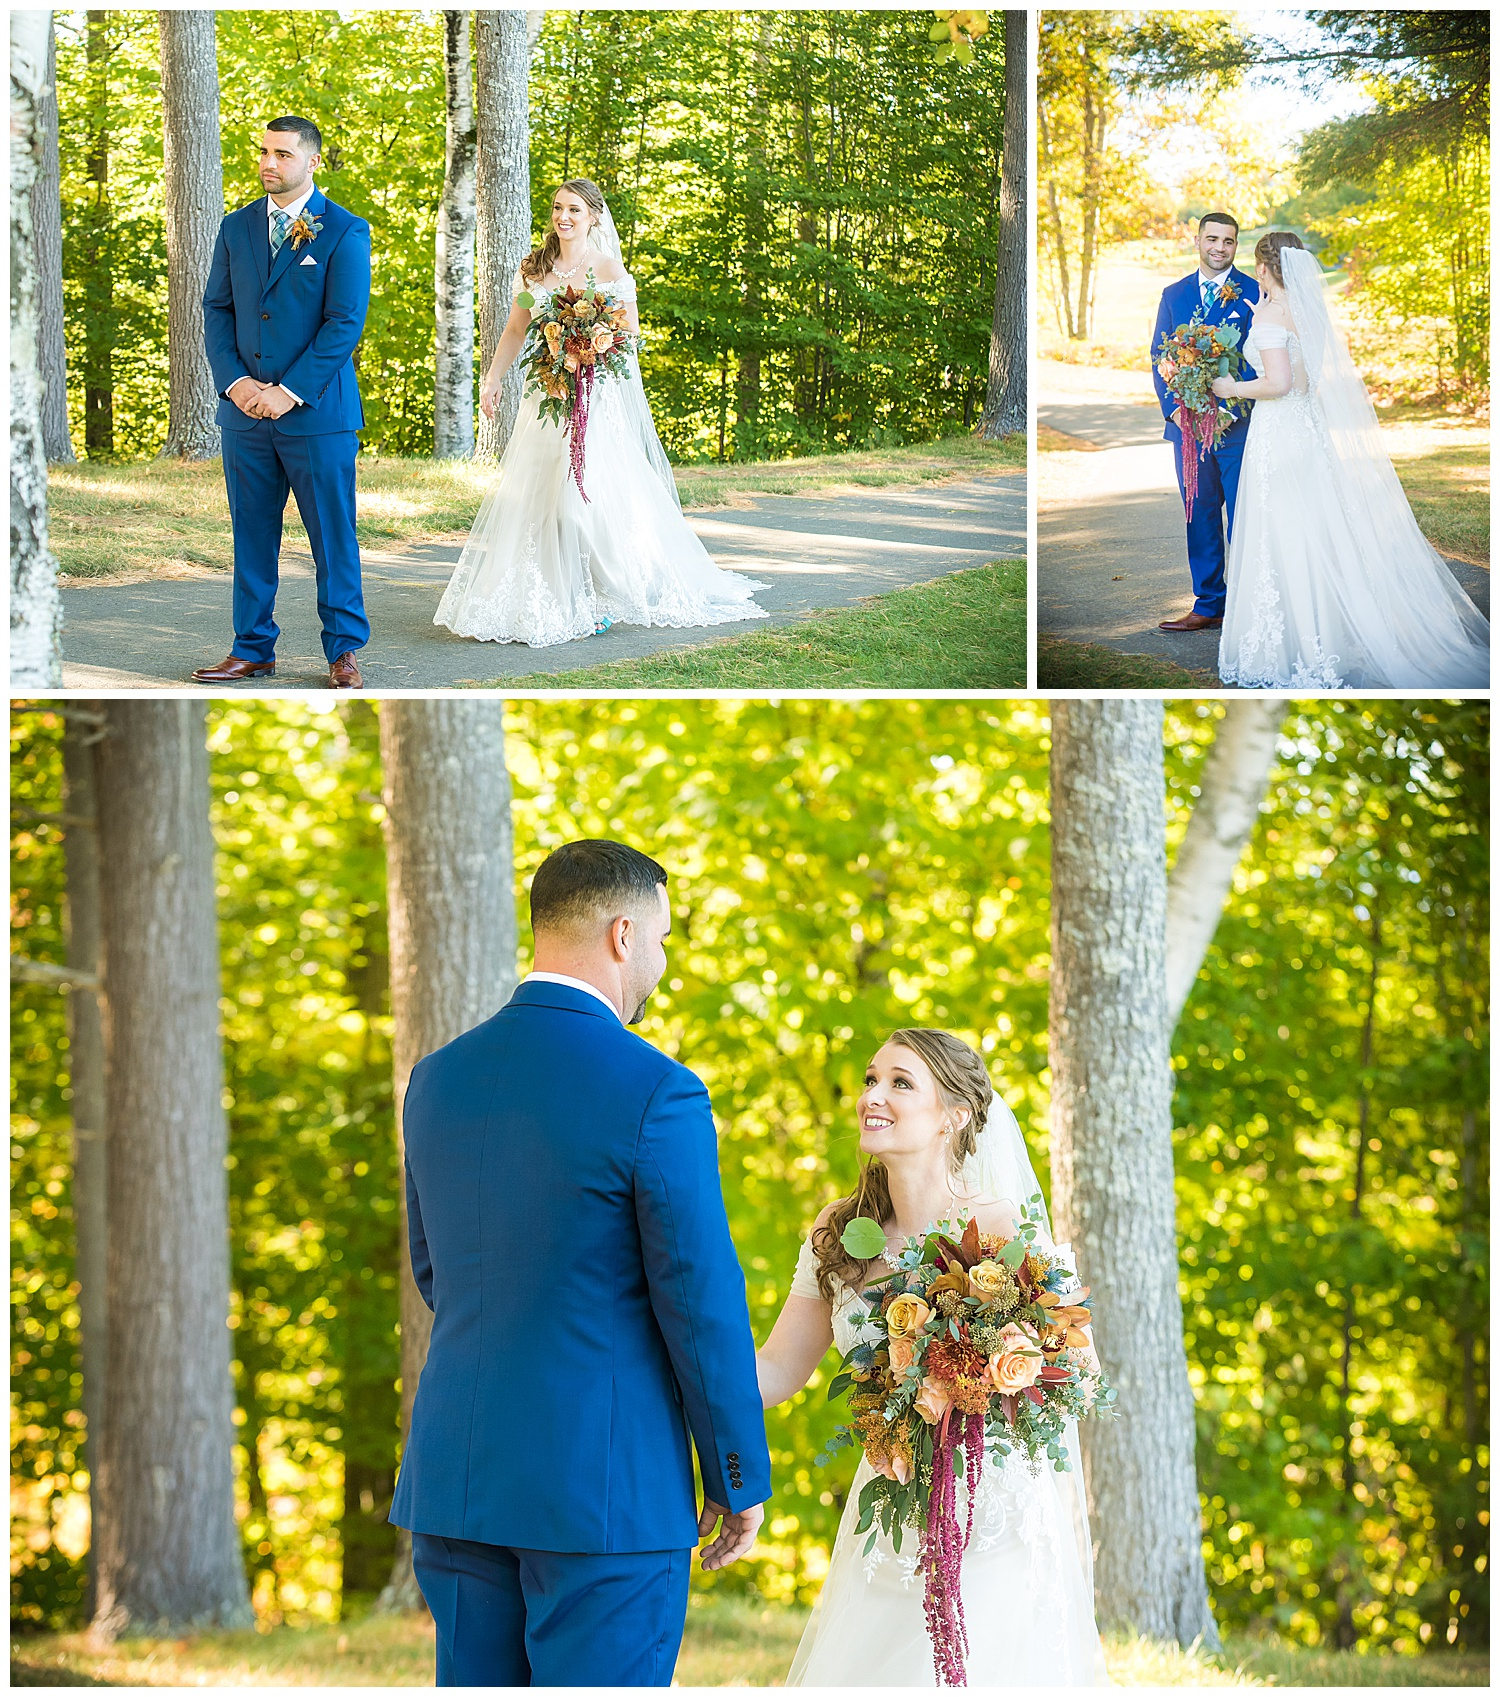 2Owl's Nest White Mountain Wedding - First Look